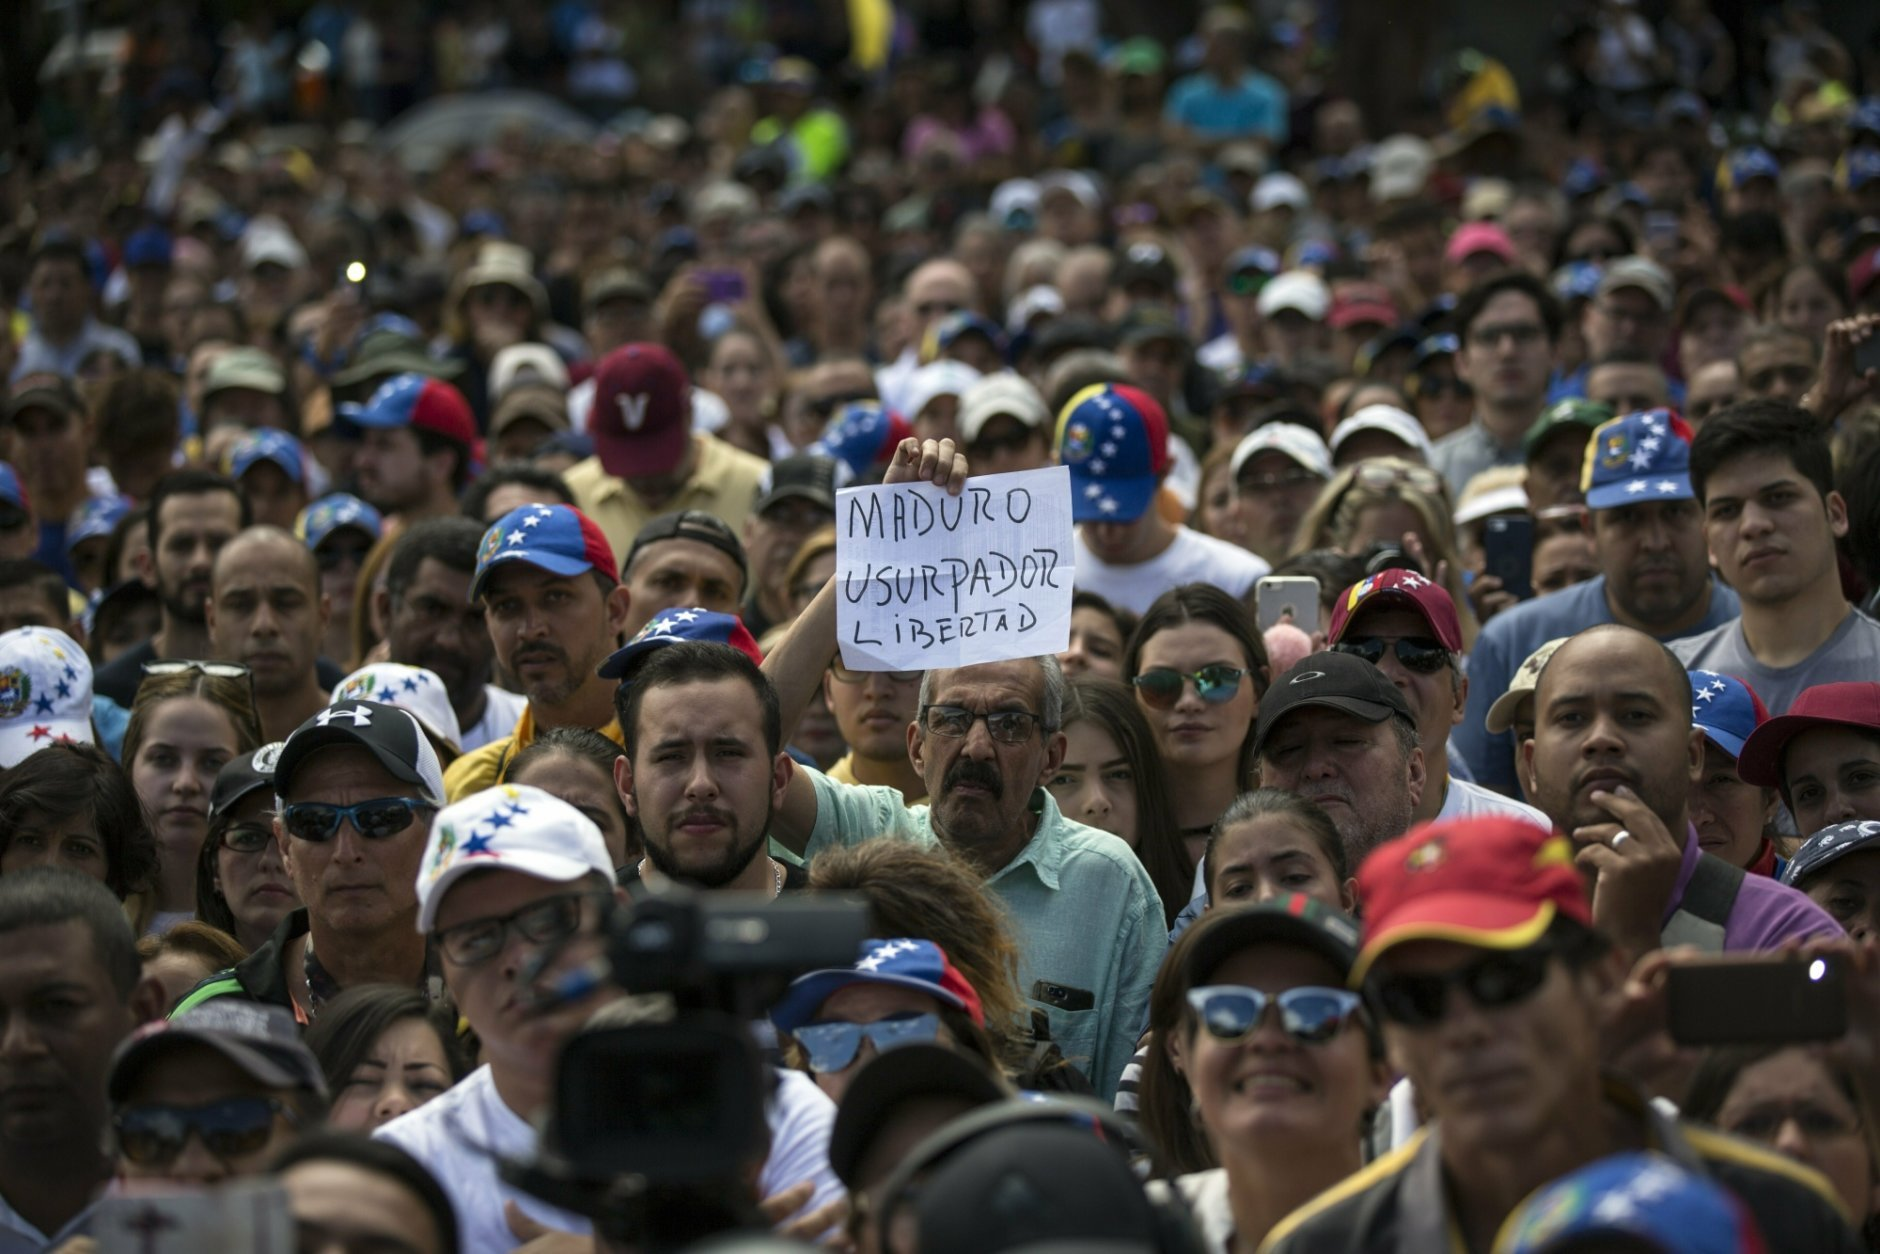 """A man holds a sign with a message that reads in Spanish: """"Maduro, Usurper. Freedom"""" during an opposition rally in Las Mercedes neighborhood of Caracas, Venezuela, Saturday, Jan. 29, 2019. Venezuela's political showdown moves to the United Nations where a Security Council meeting called by the United States will pit backers of President Nicolas Maduro against the Trump administration and supporters of the country's self-declared interim leader Juan Guaido. (AP Photo/Rodrigo Abd)"""